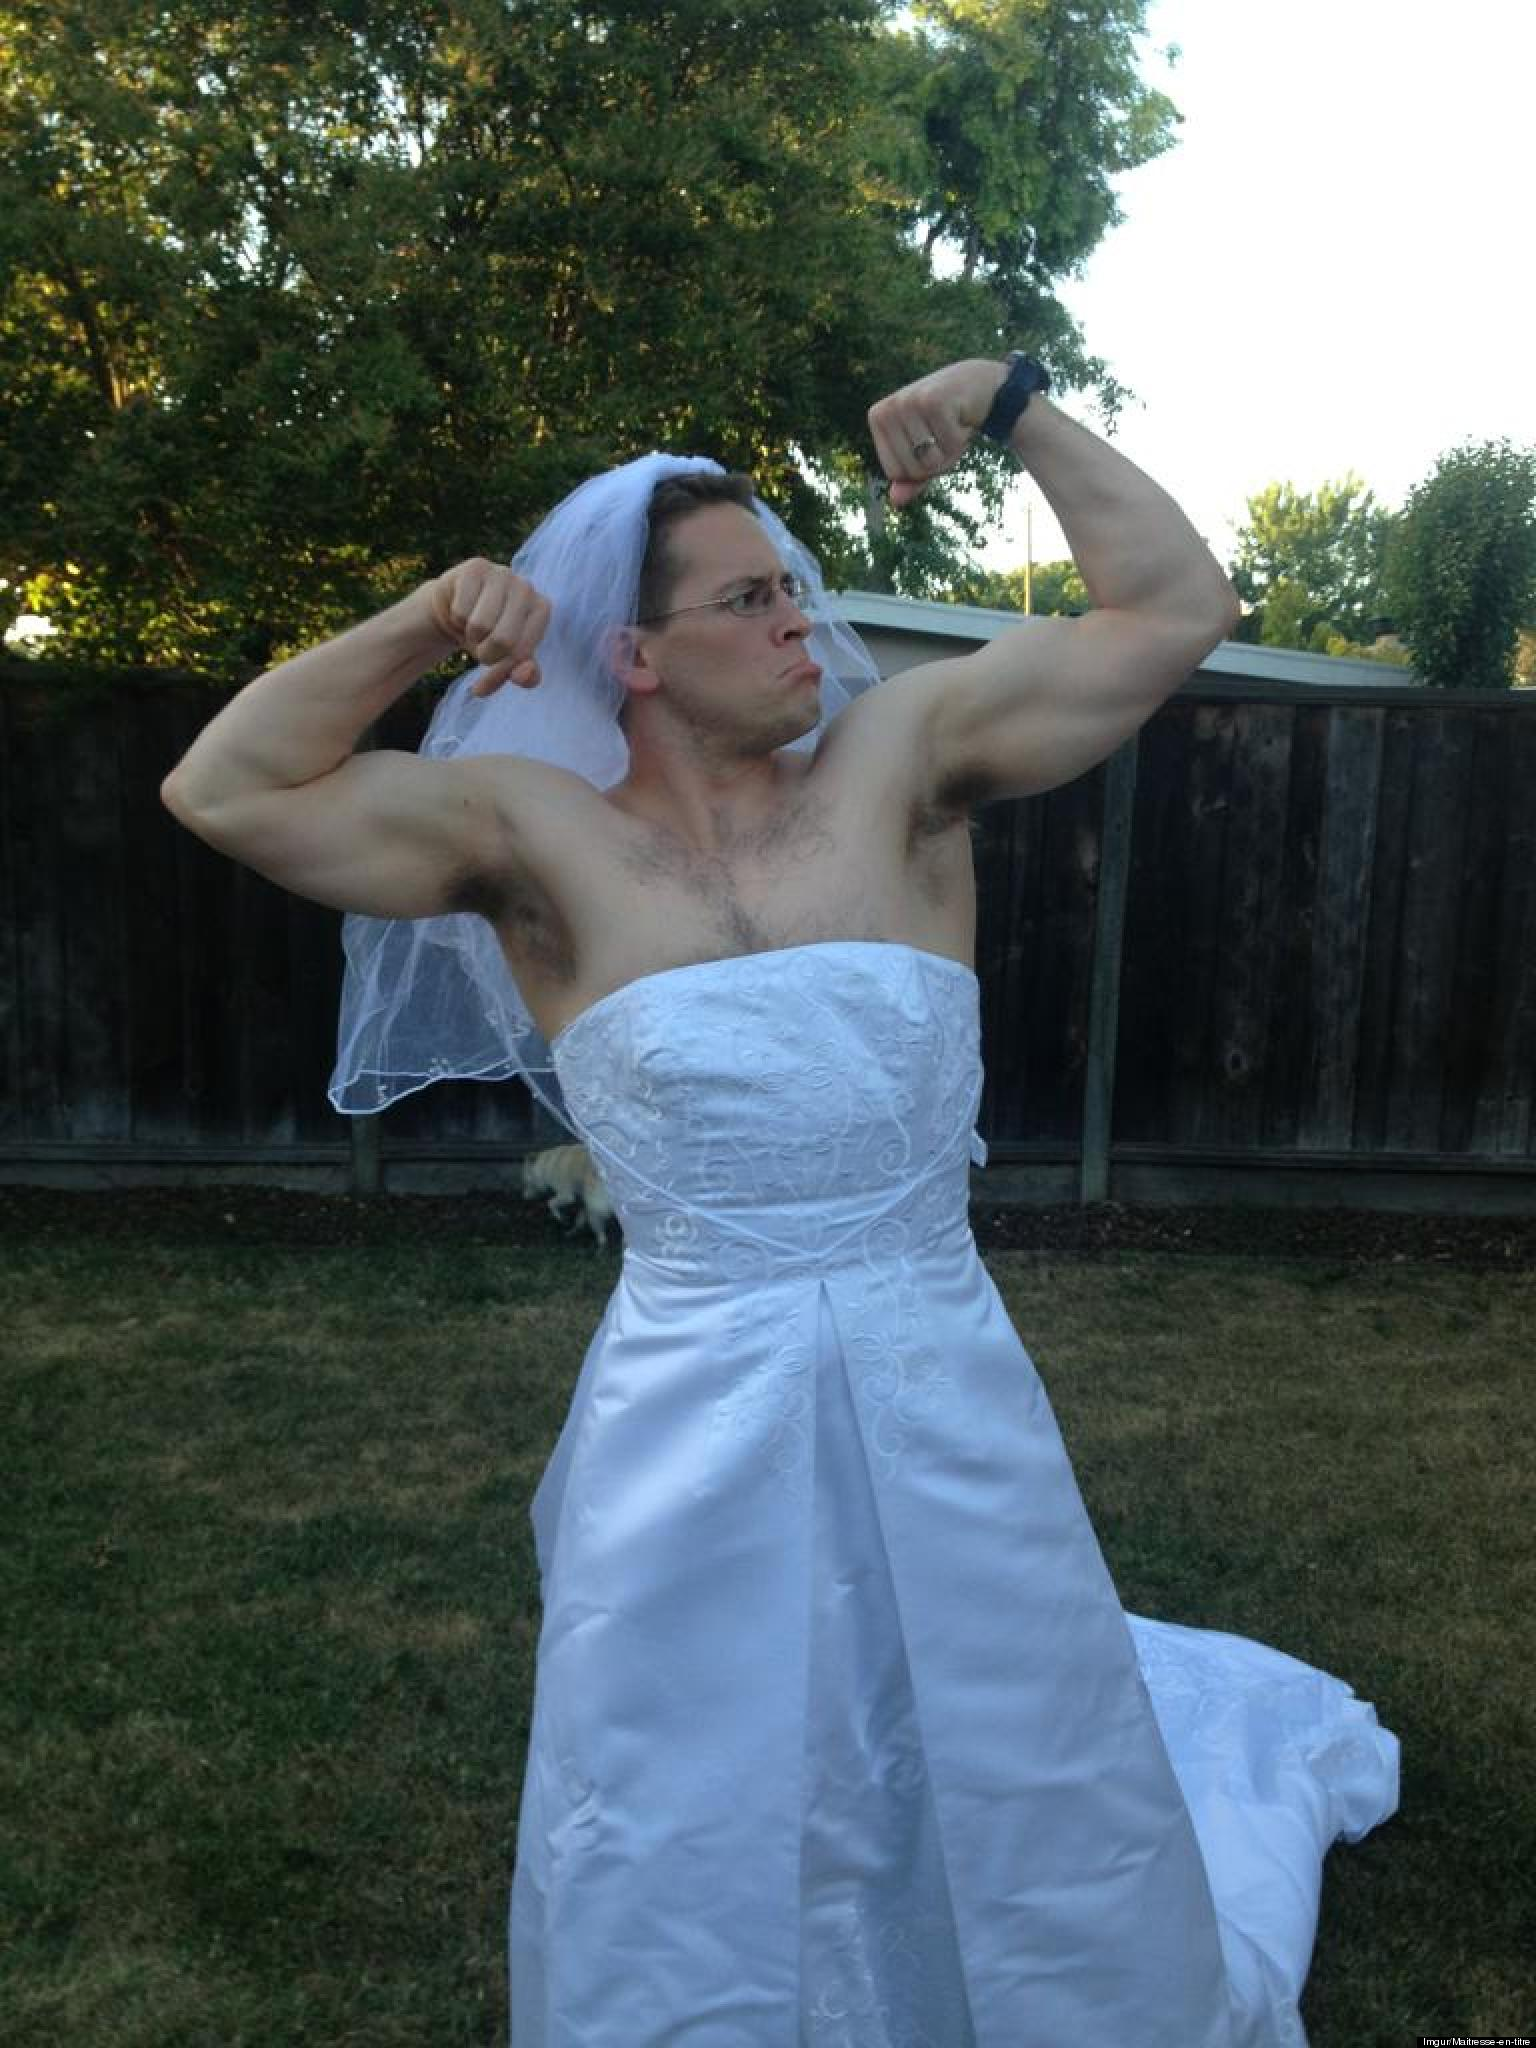 Funny Divorce Why This Man Is Wearing A Wedding Dress PHOTO